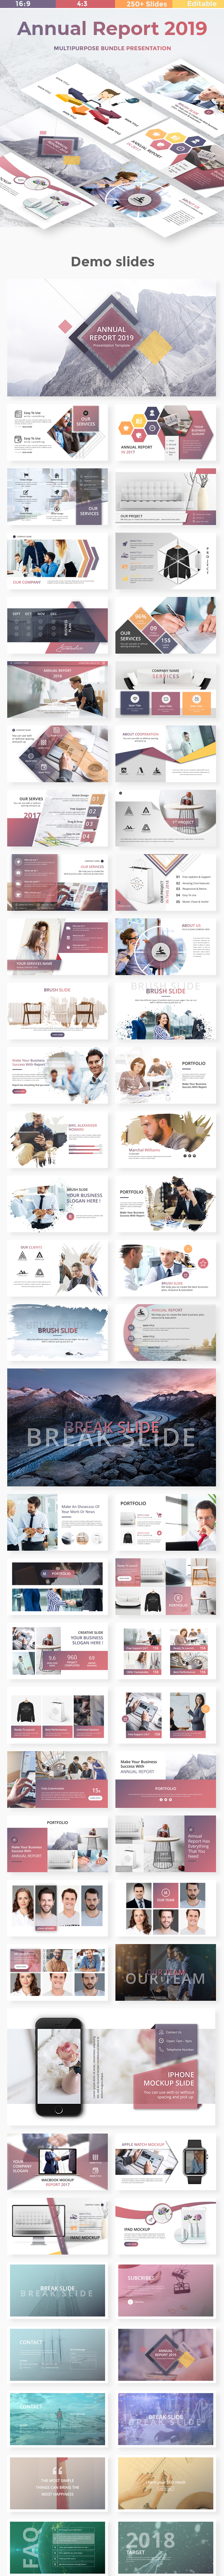 Annual Report 2019 - Business Google Slide Template - Google Slides Presentation Templates